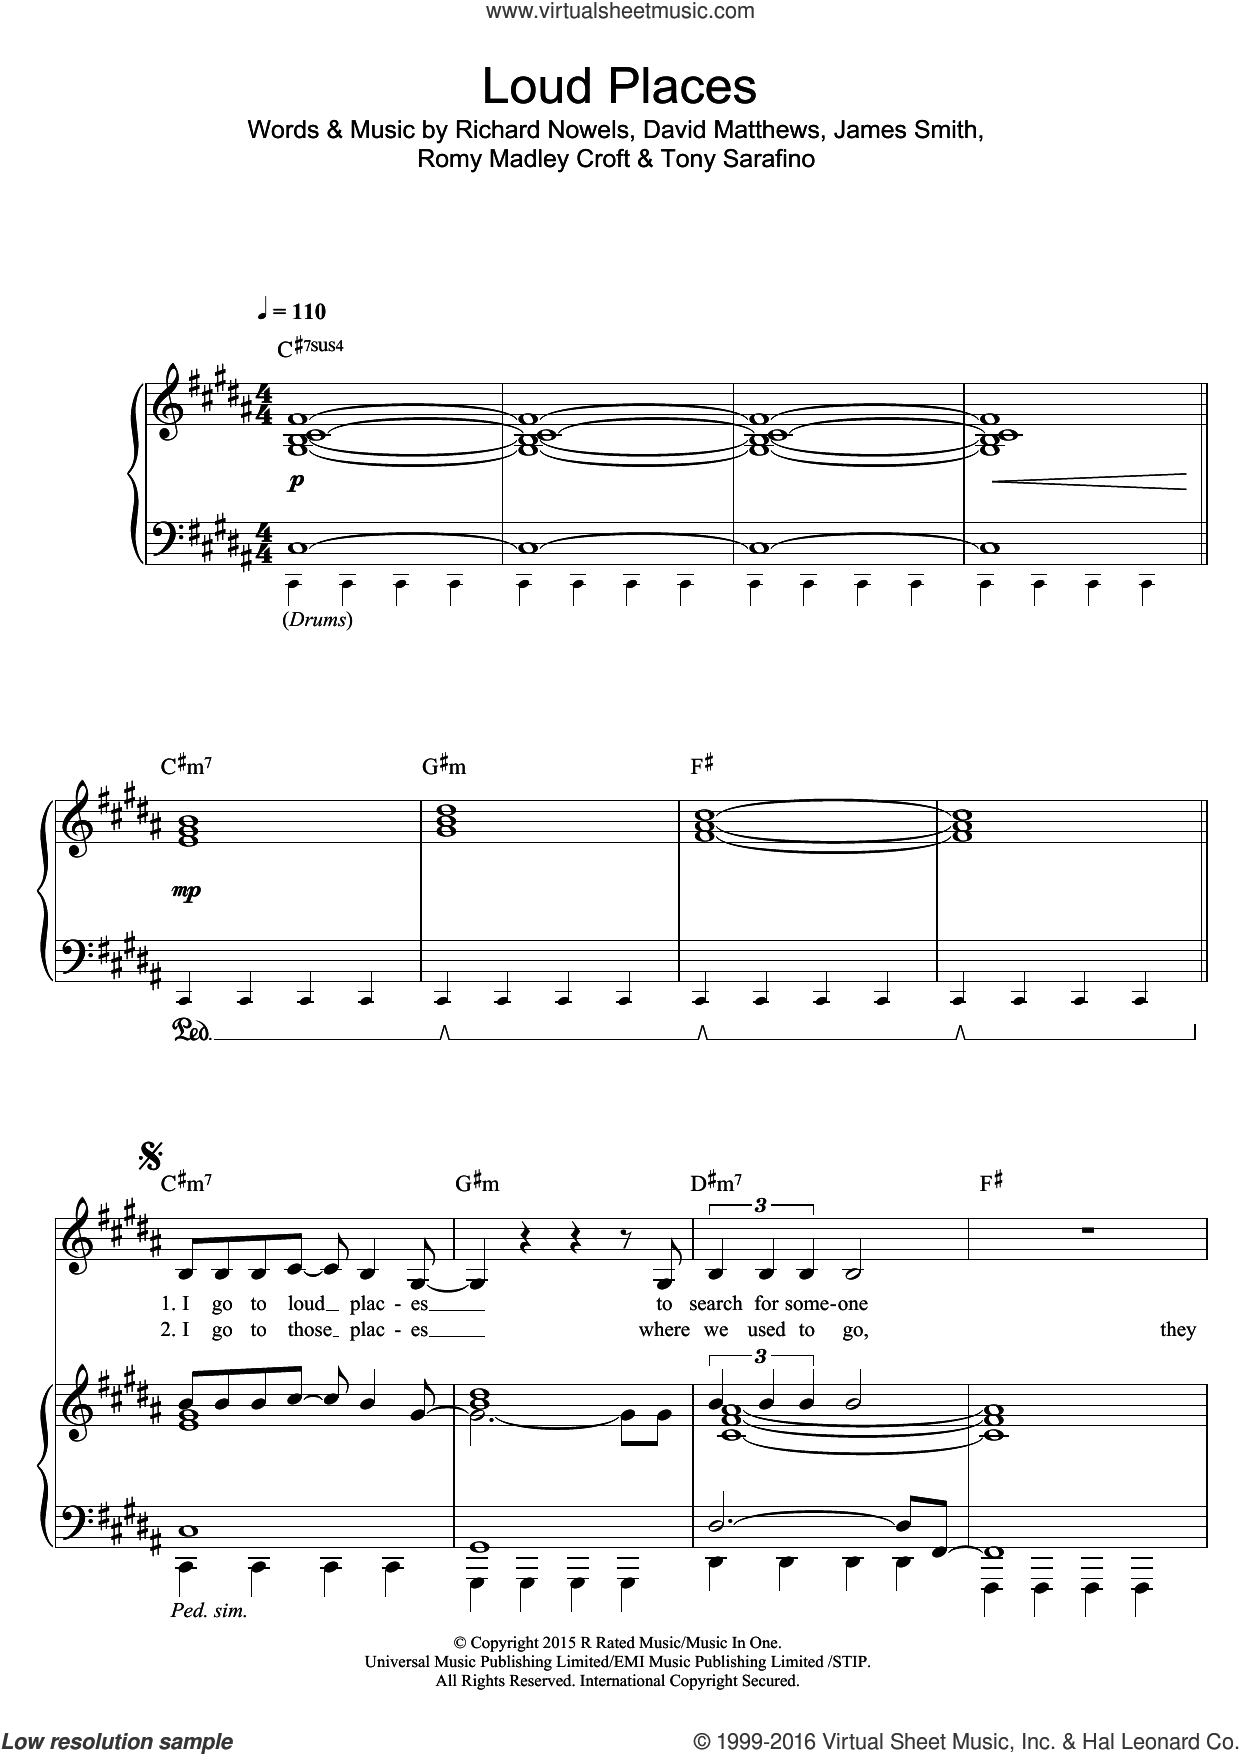 Loud Places sheet music for voice, piano or guitar by Tony Sarafino, David Matthews, Rick Nowels and Romy Madley Croft. Score Image Preview.